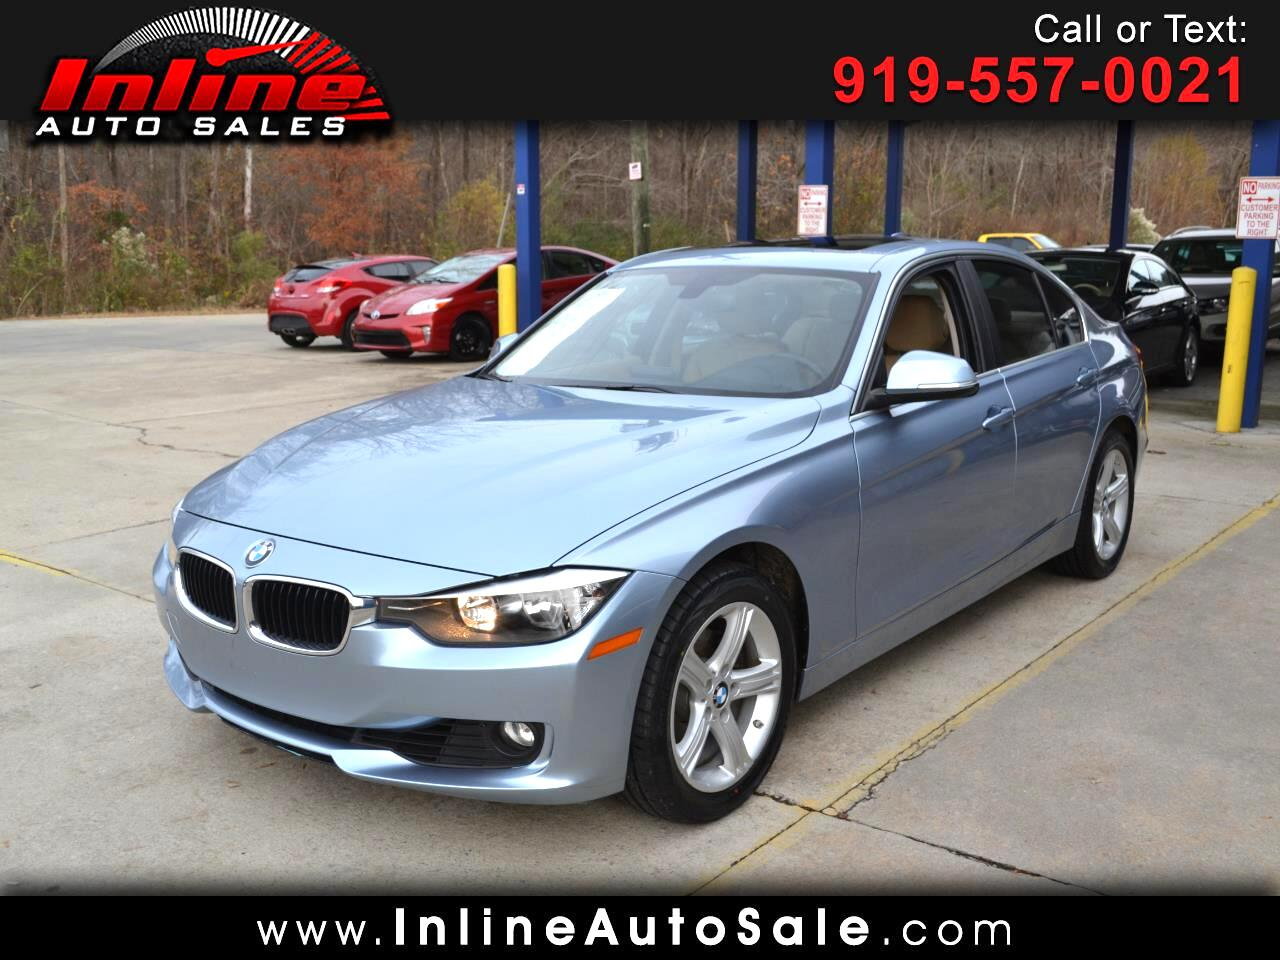 2015 BMW 3 Series 4dr Sdn 328i xDrive AWD South Africa